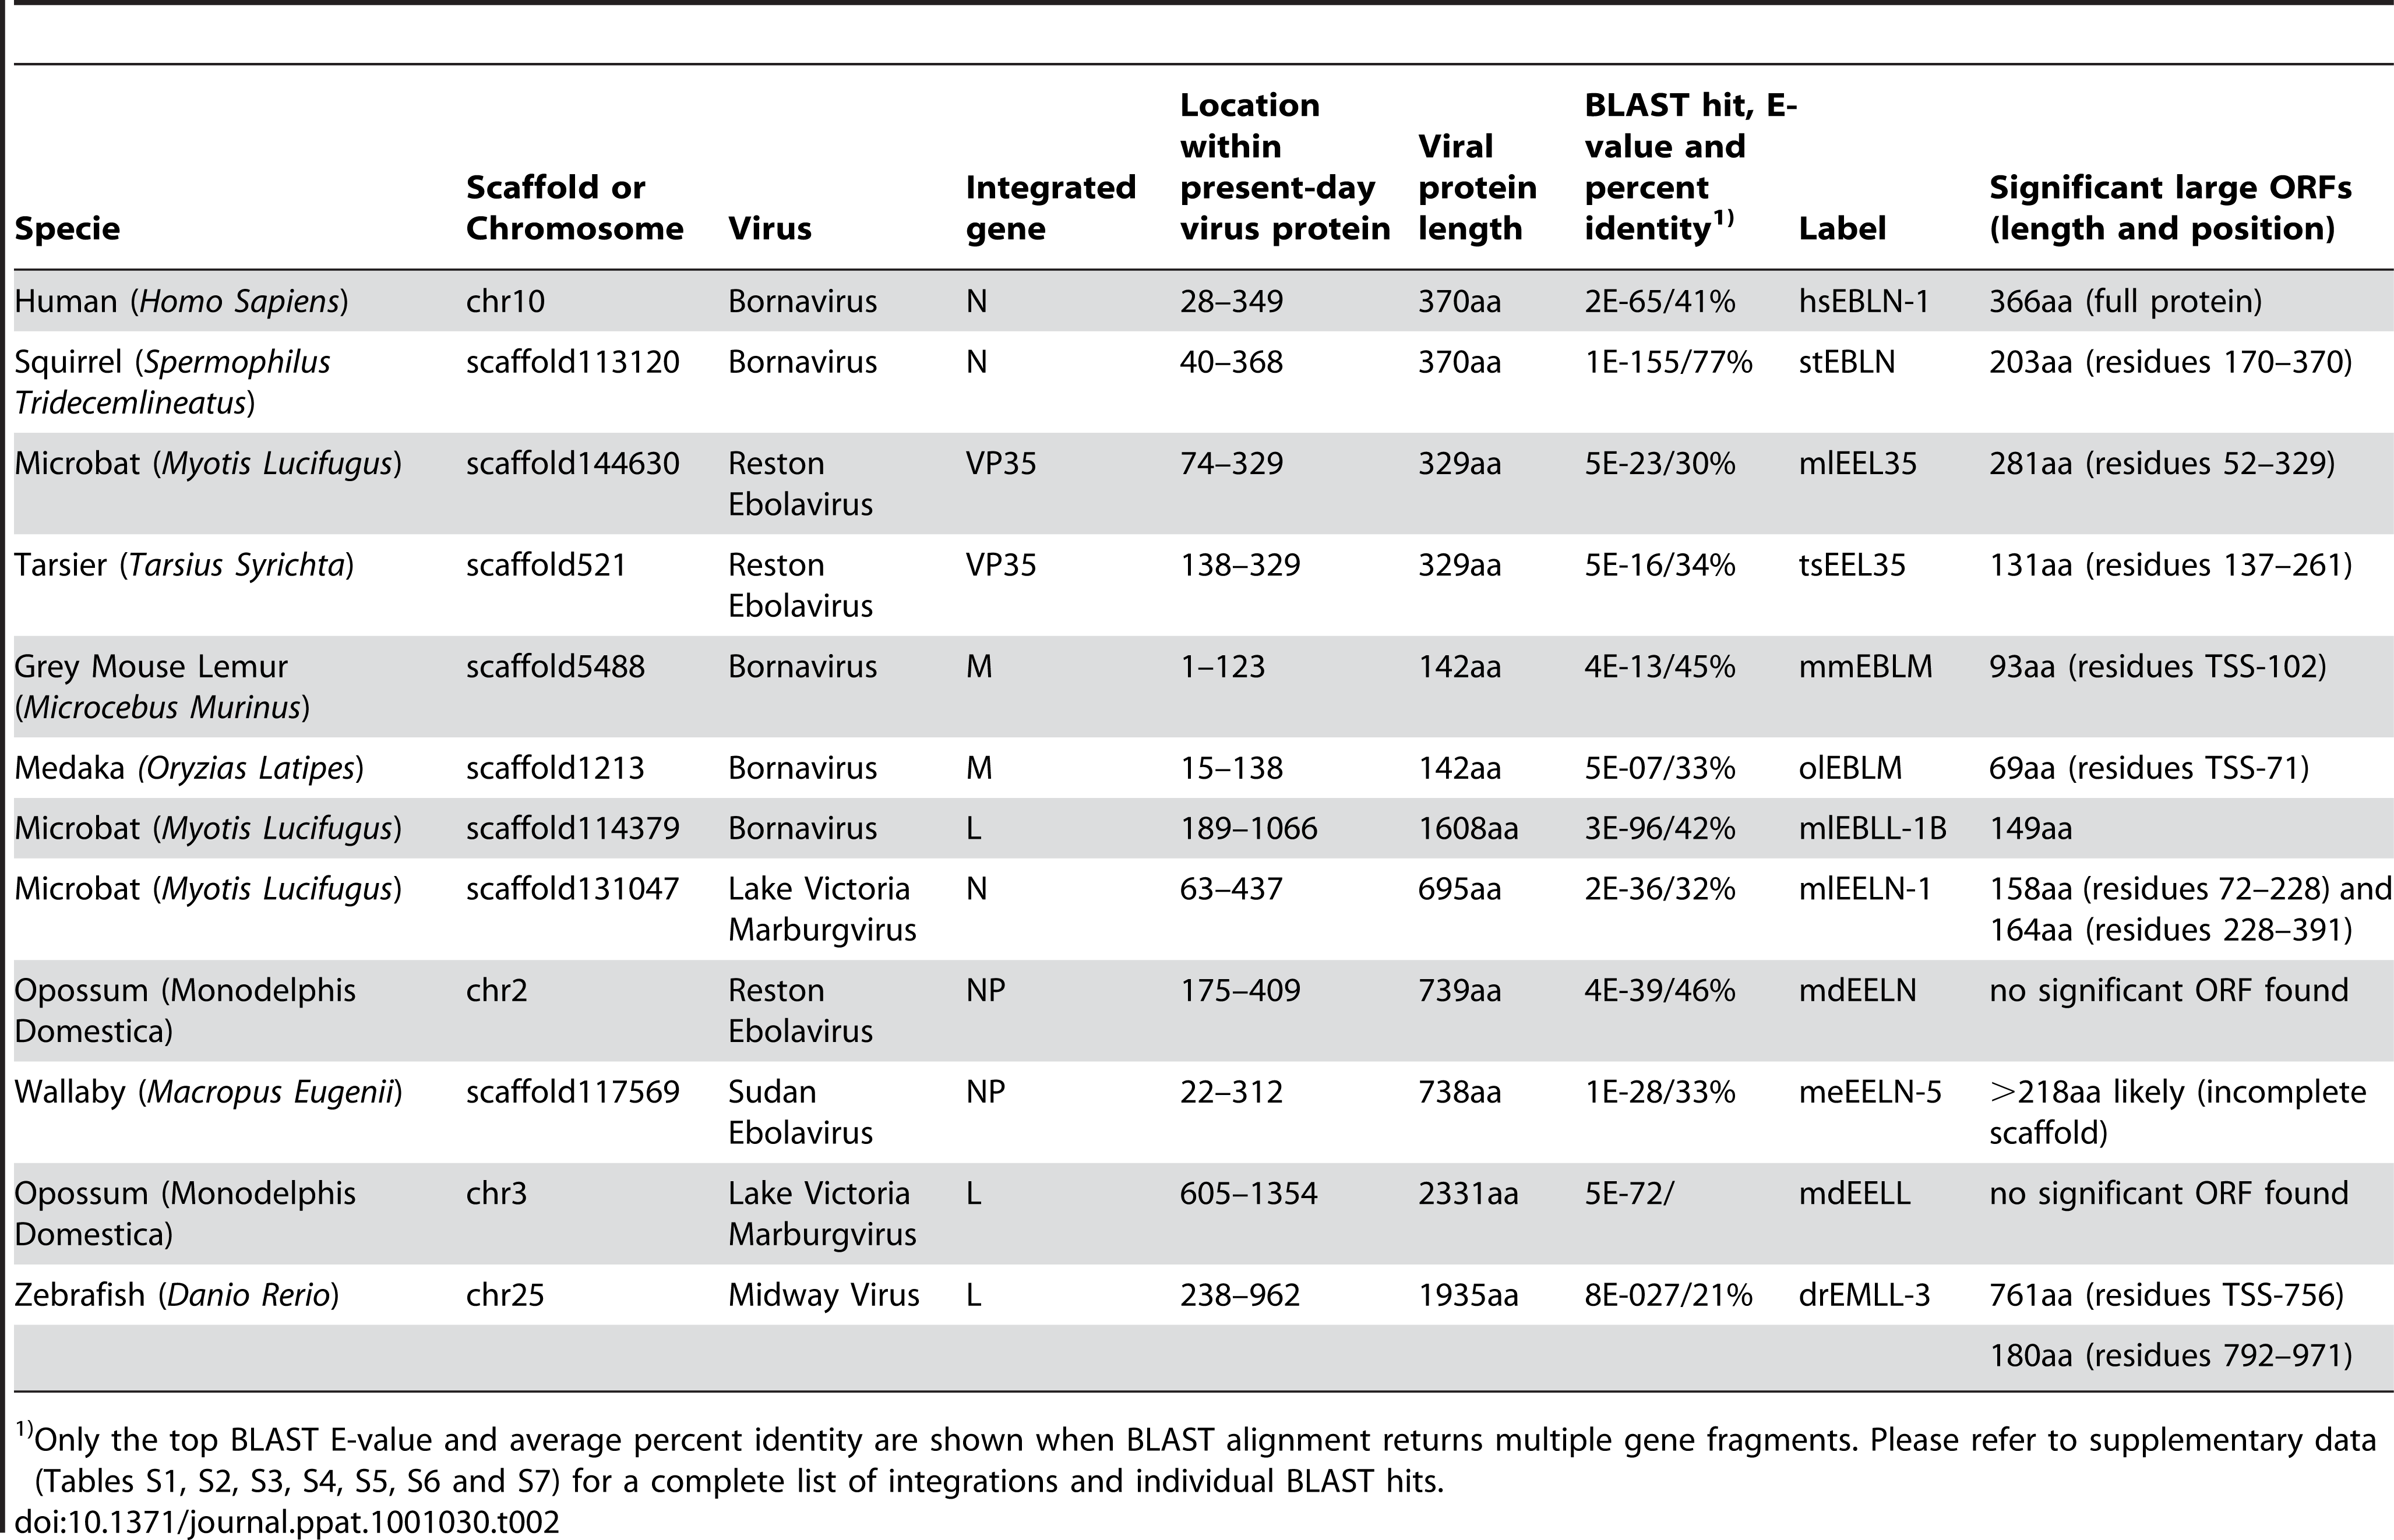 Selected endogenous viral sequences found in vertebrate genomes.